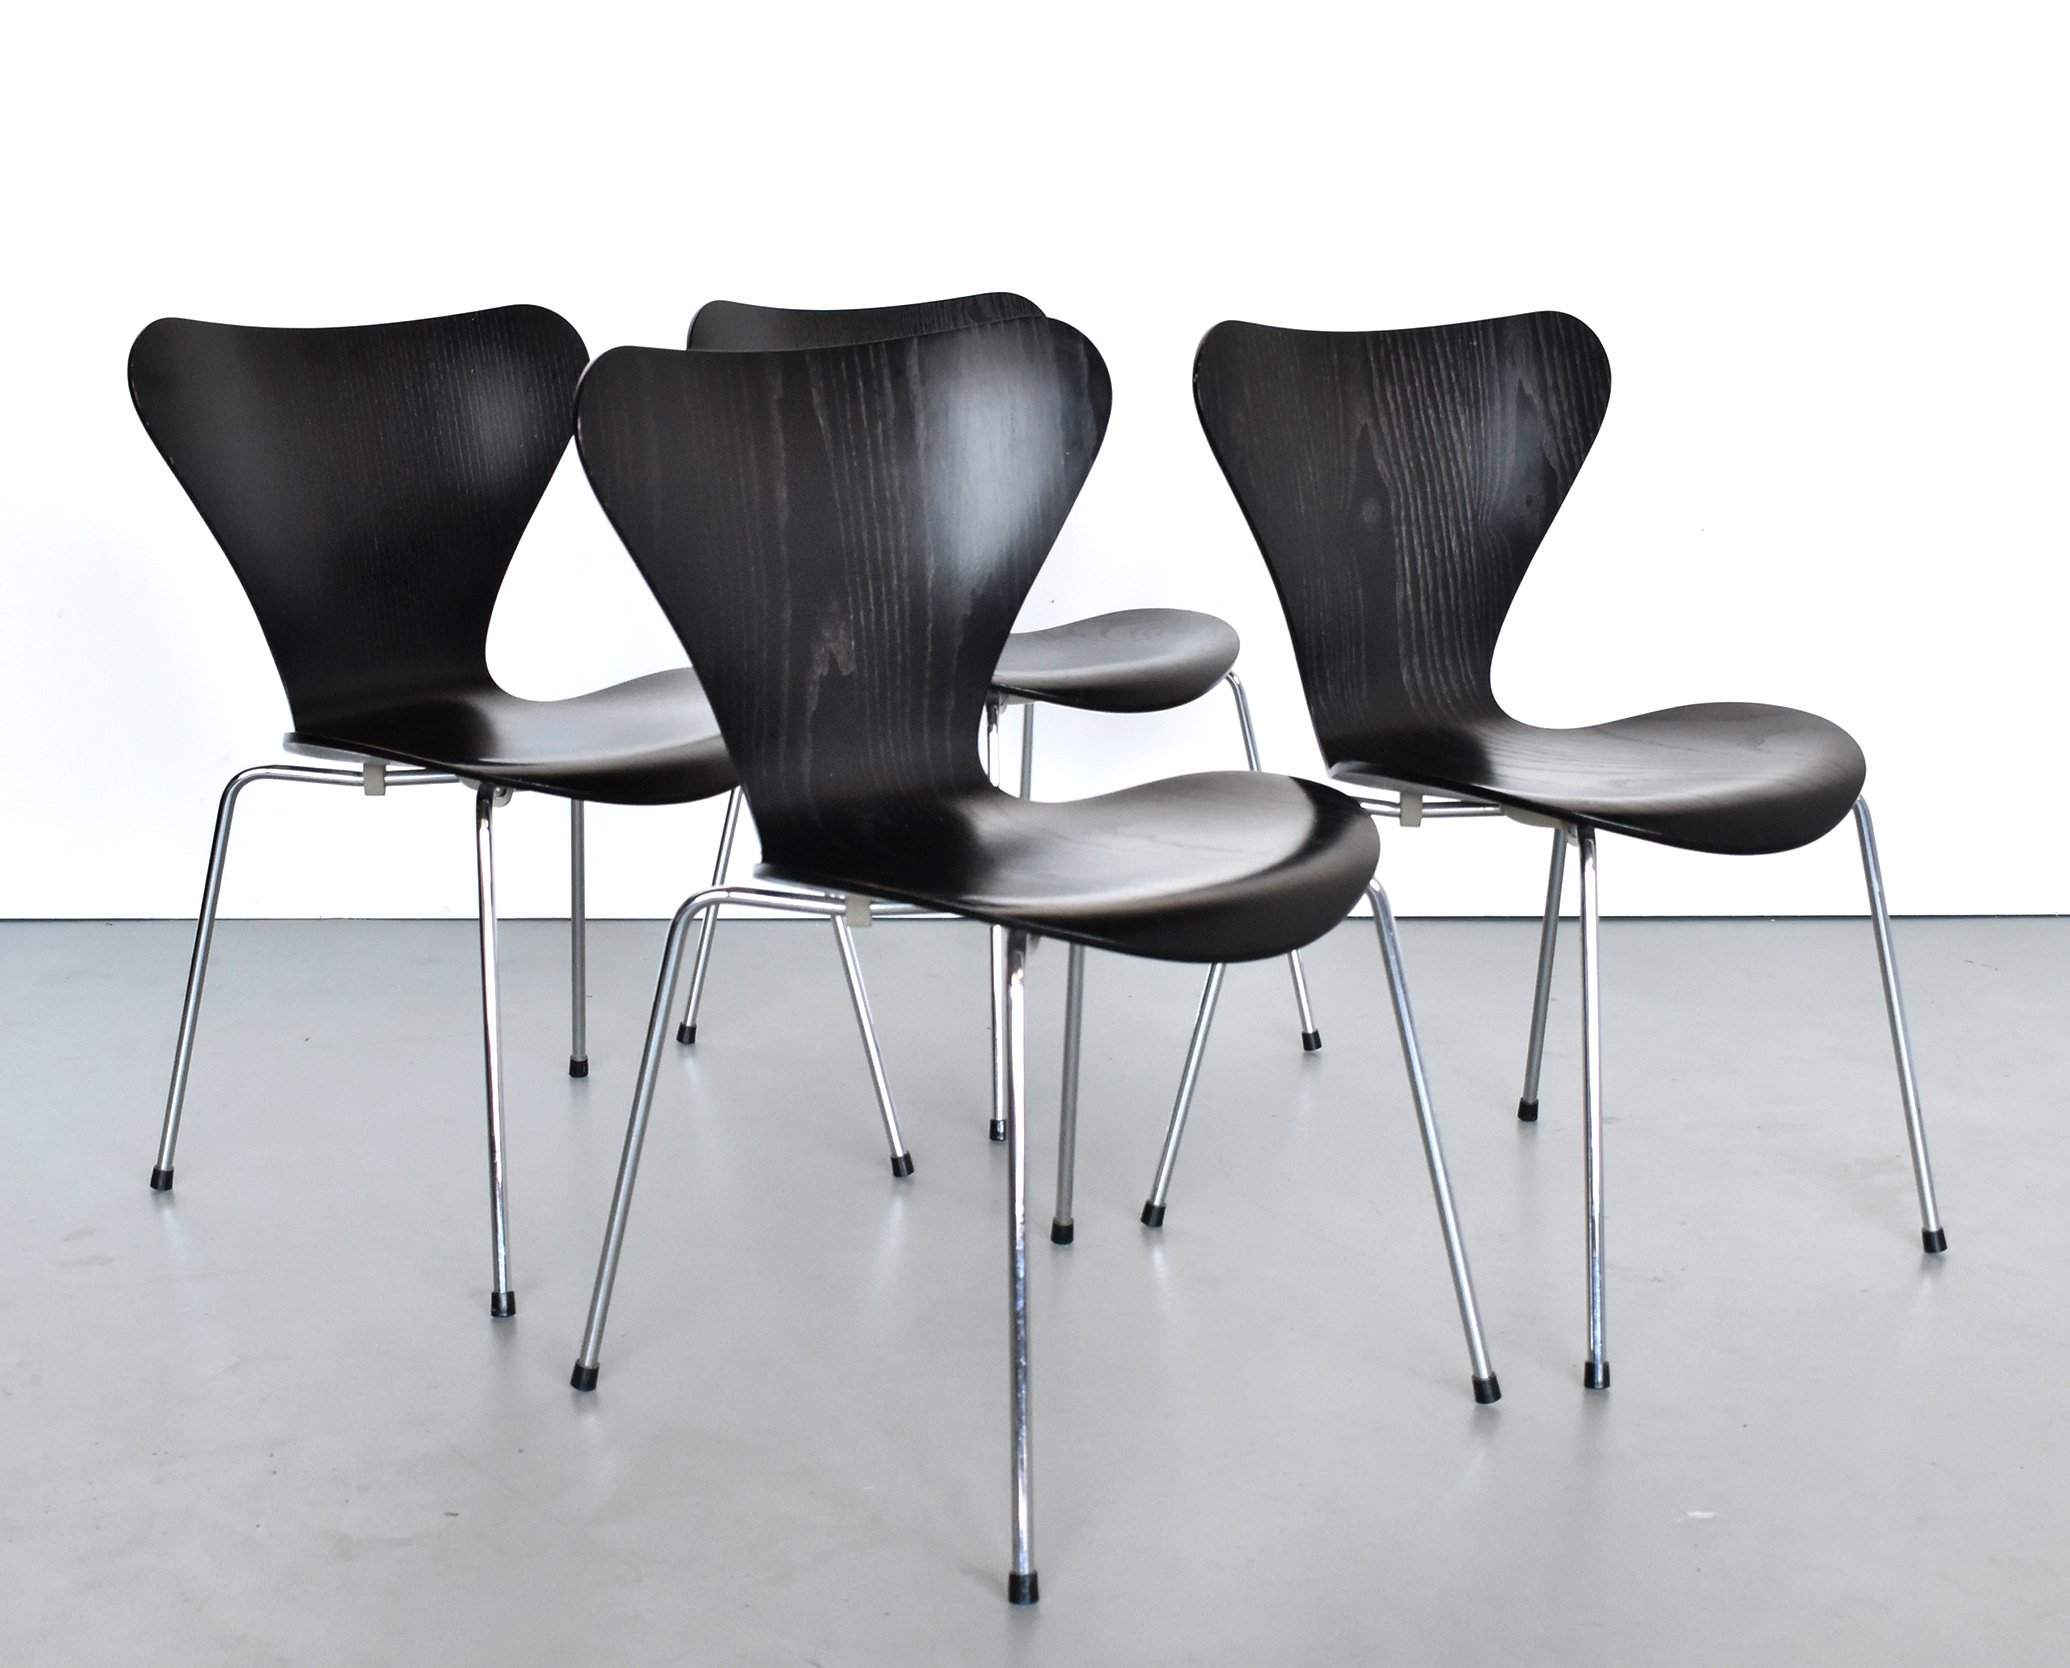 Chairs 7 By Of Hansen Set Arne Jacobsen Series Dining Fritz 4 For